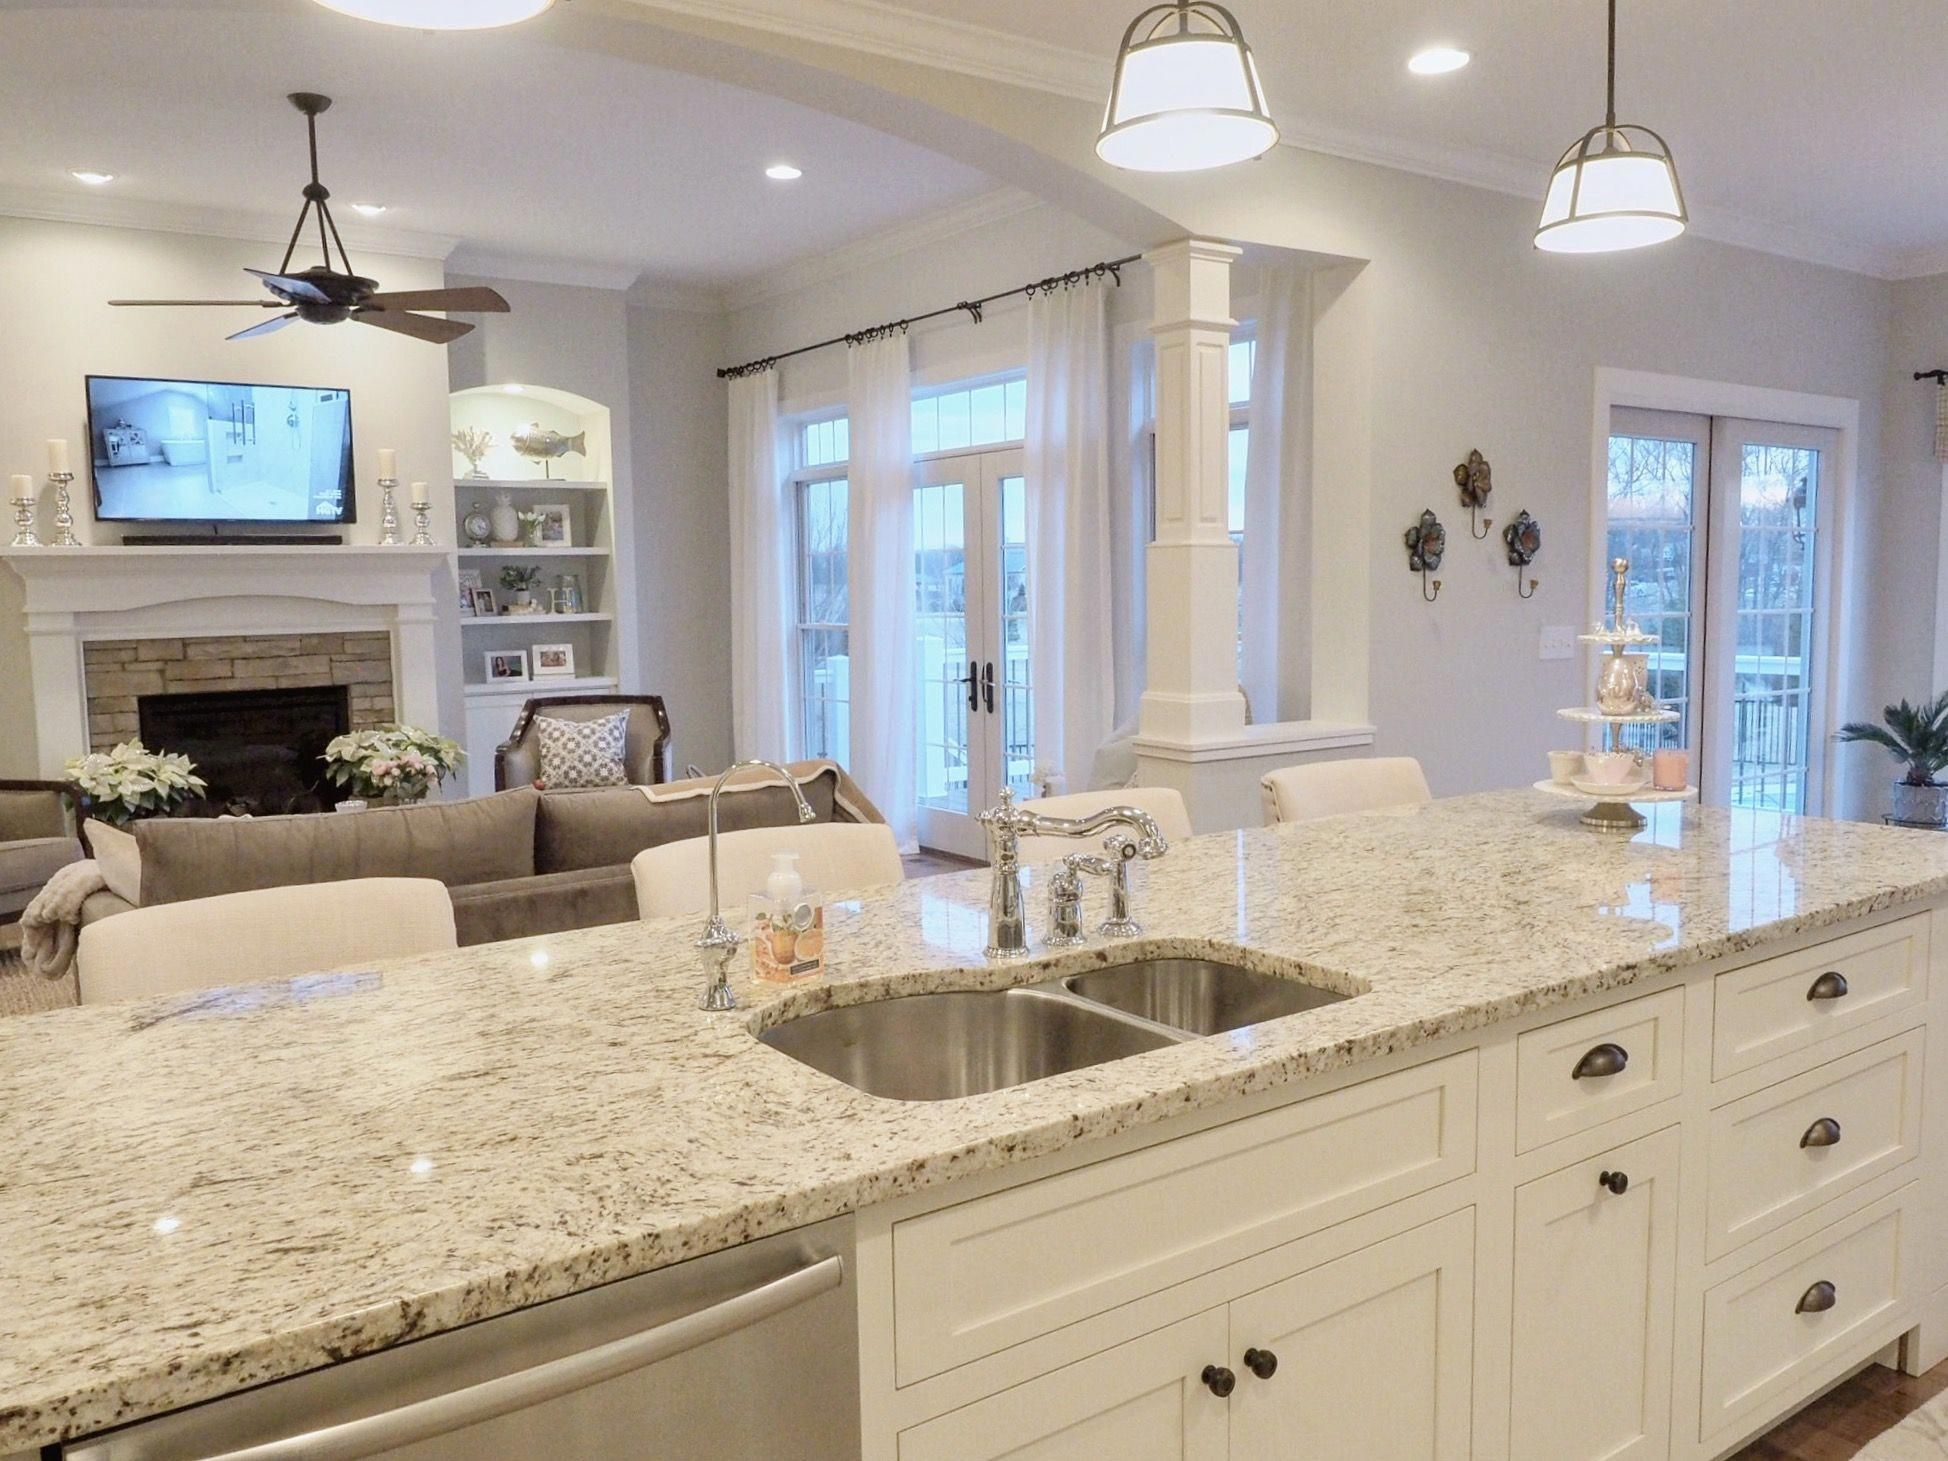 kitchen island open layout open floor plan giallo ornamental granite french doors diyde on kitchen remodel with island open concept id=20625